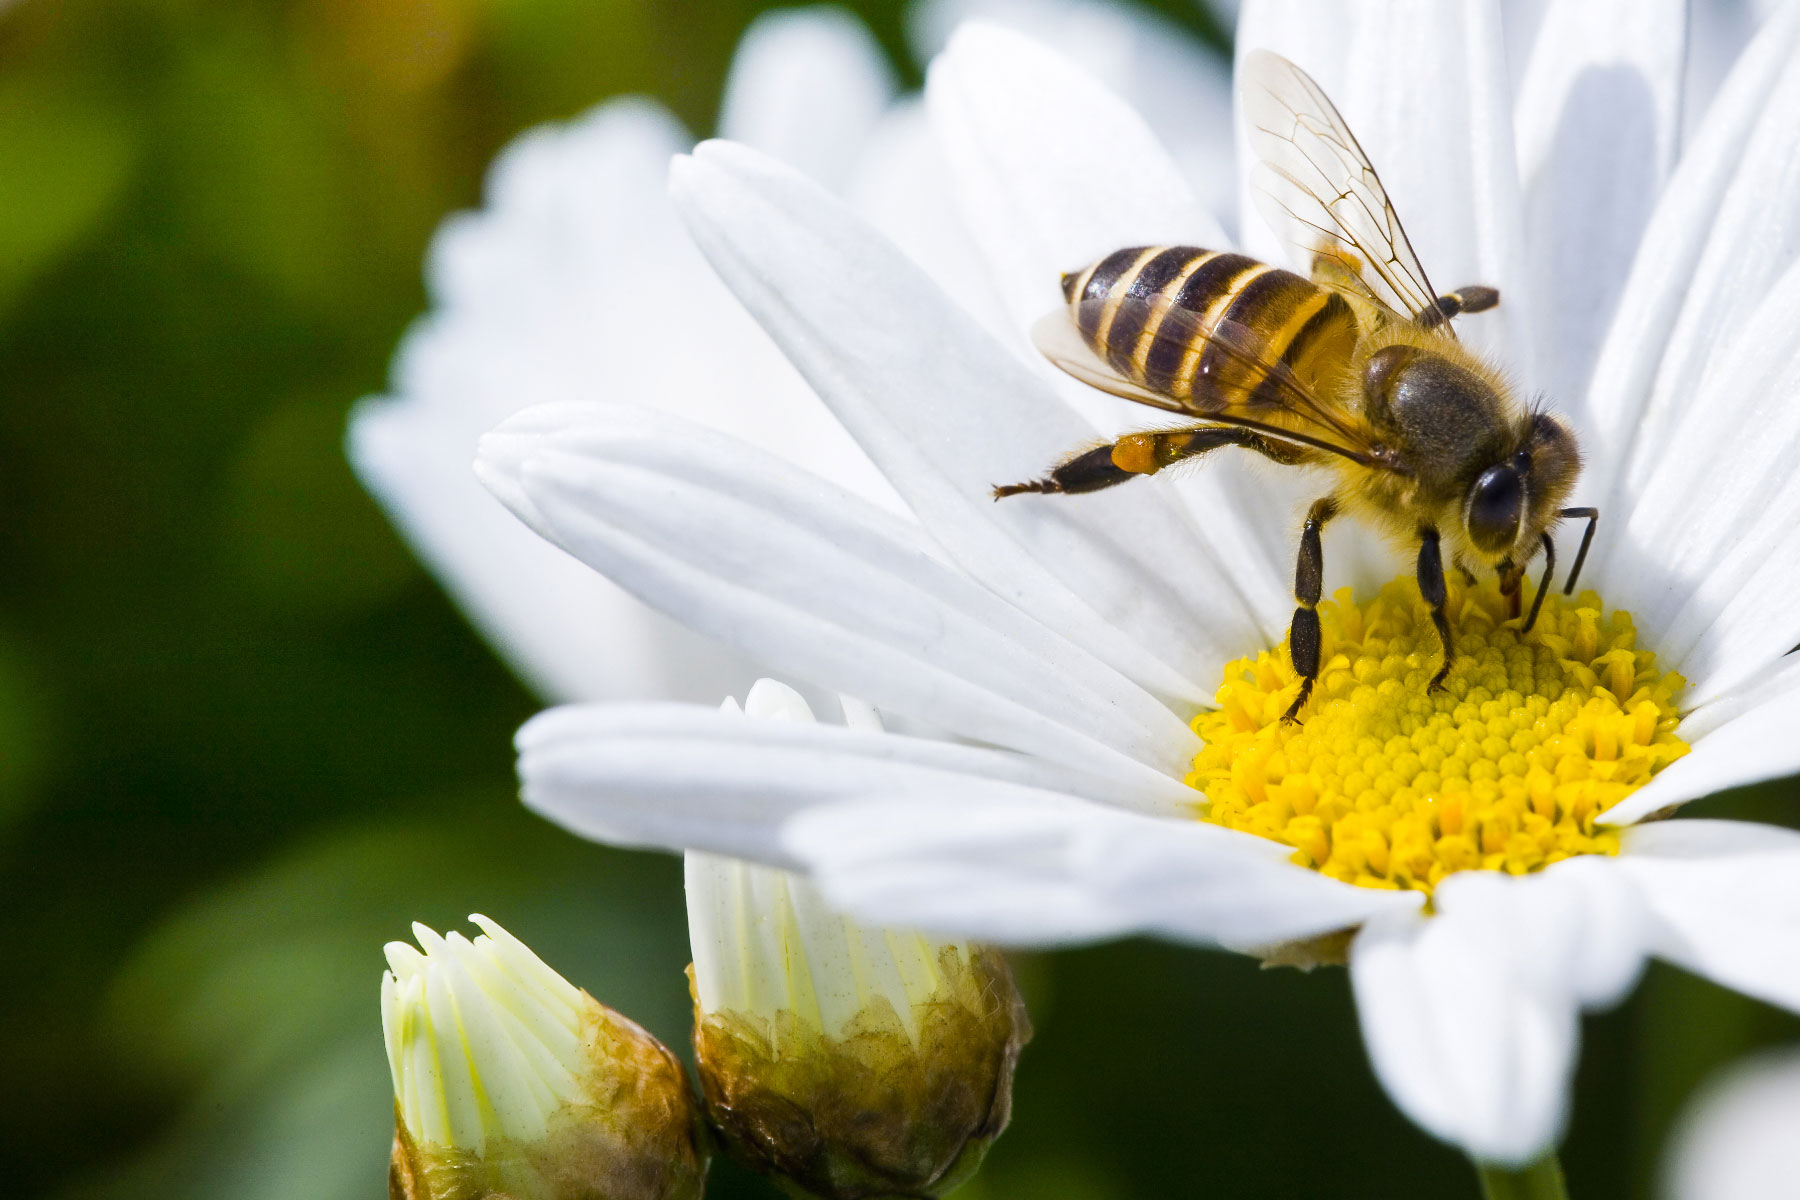 Three ways EI is helping bees